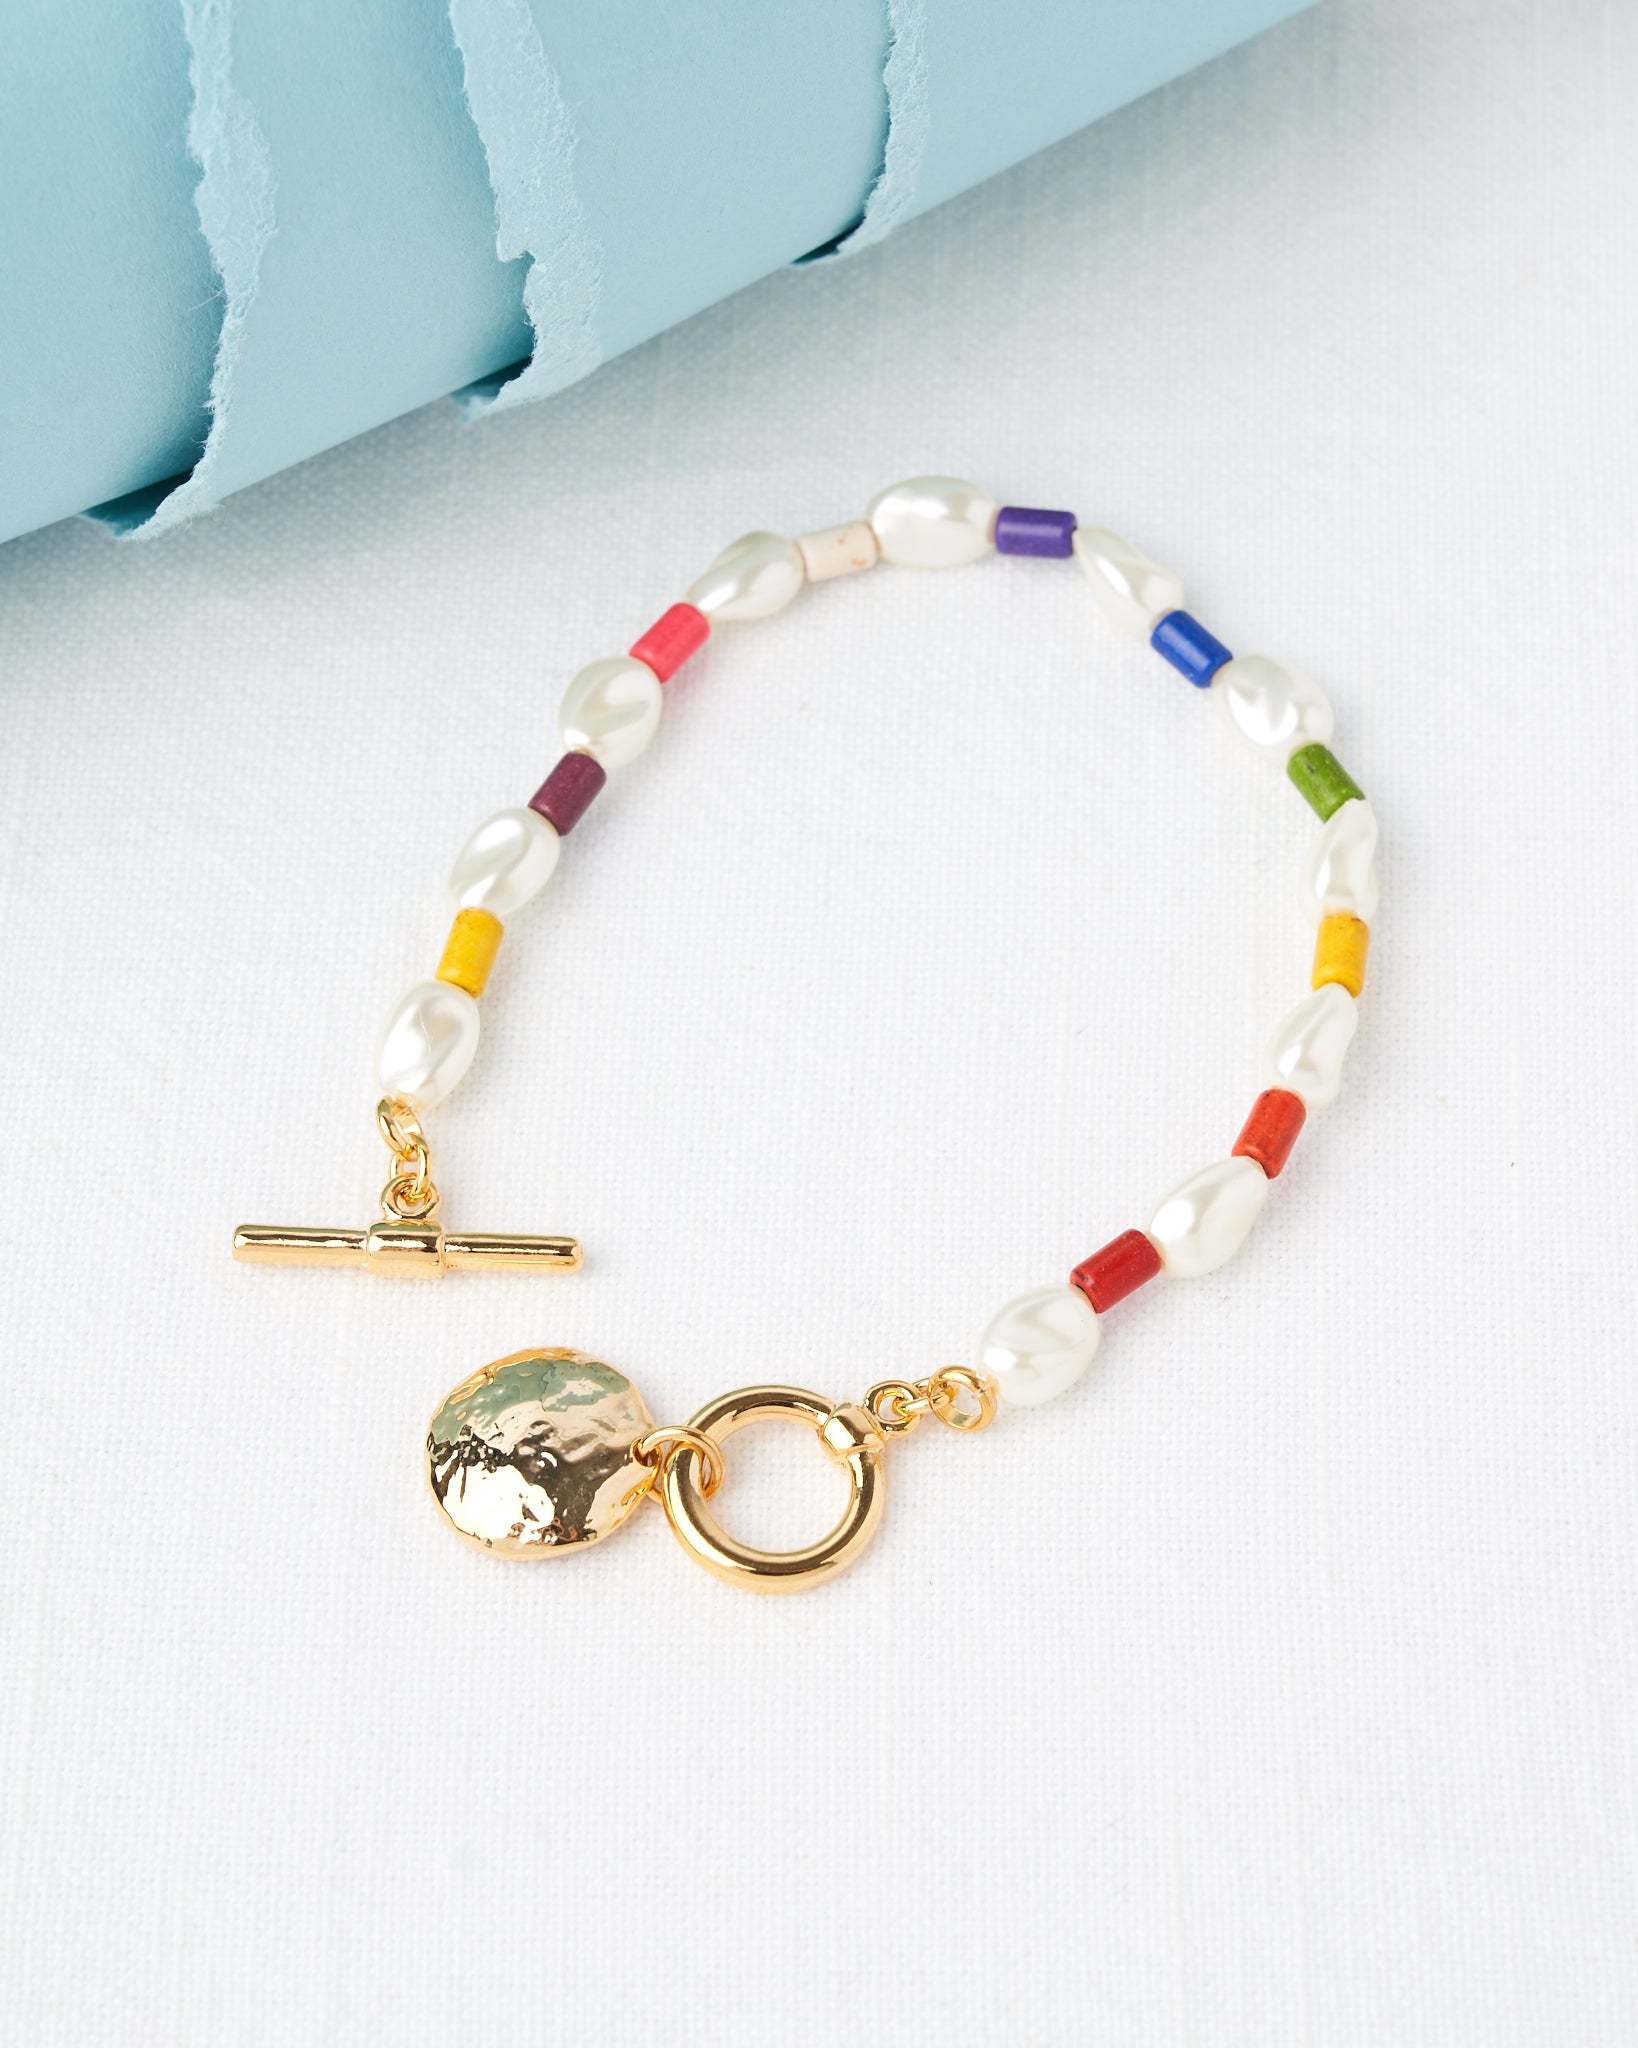 14K Plated Pearls & Colors Bracelet